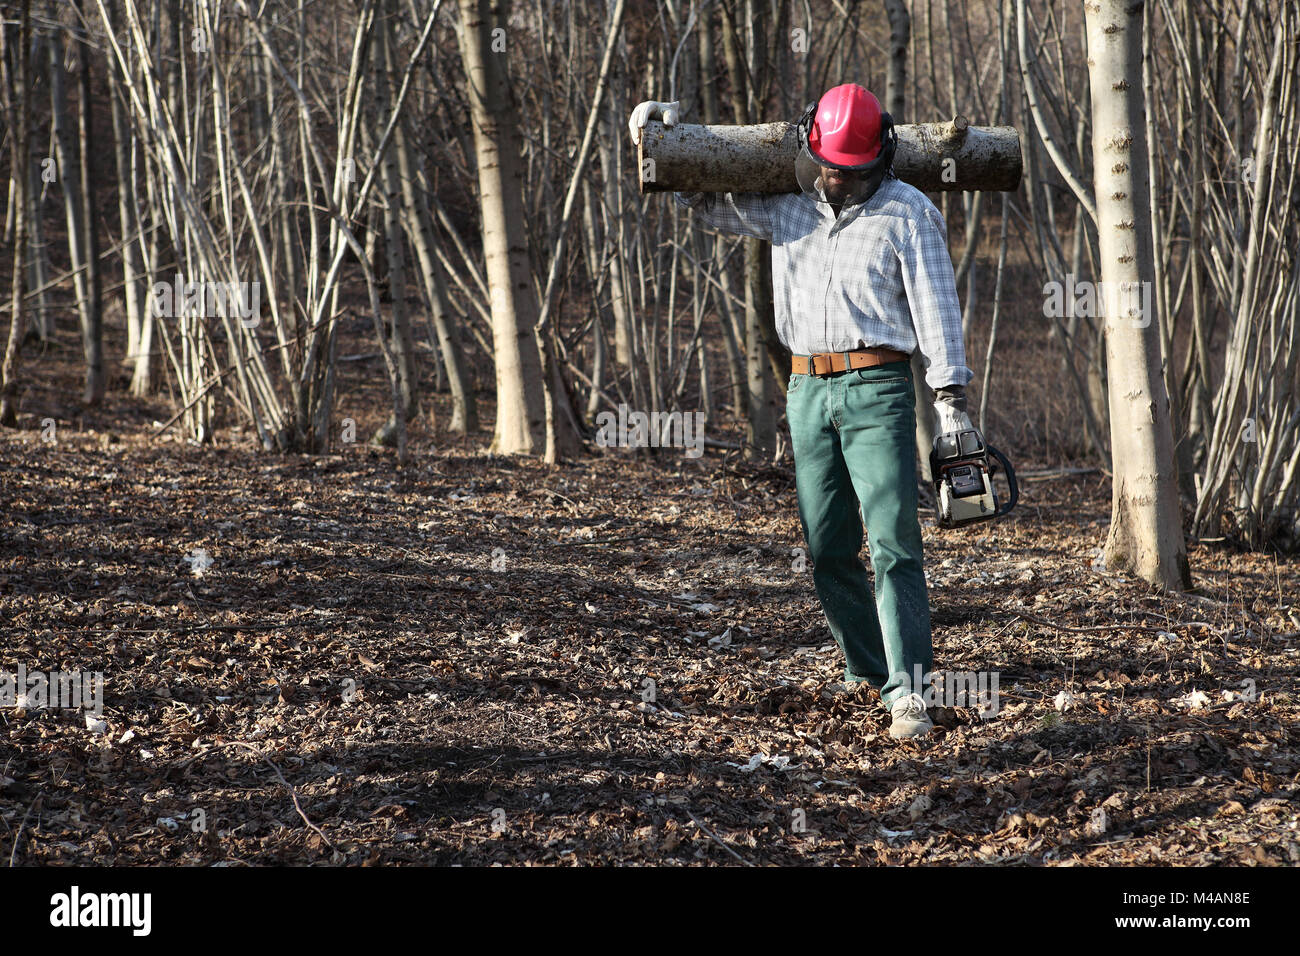 Lumberjack woodcutter with chainsaw carrying logs of big tree in the autumn forest - Stock Image